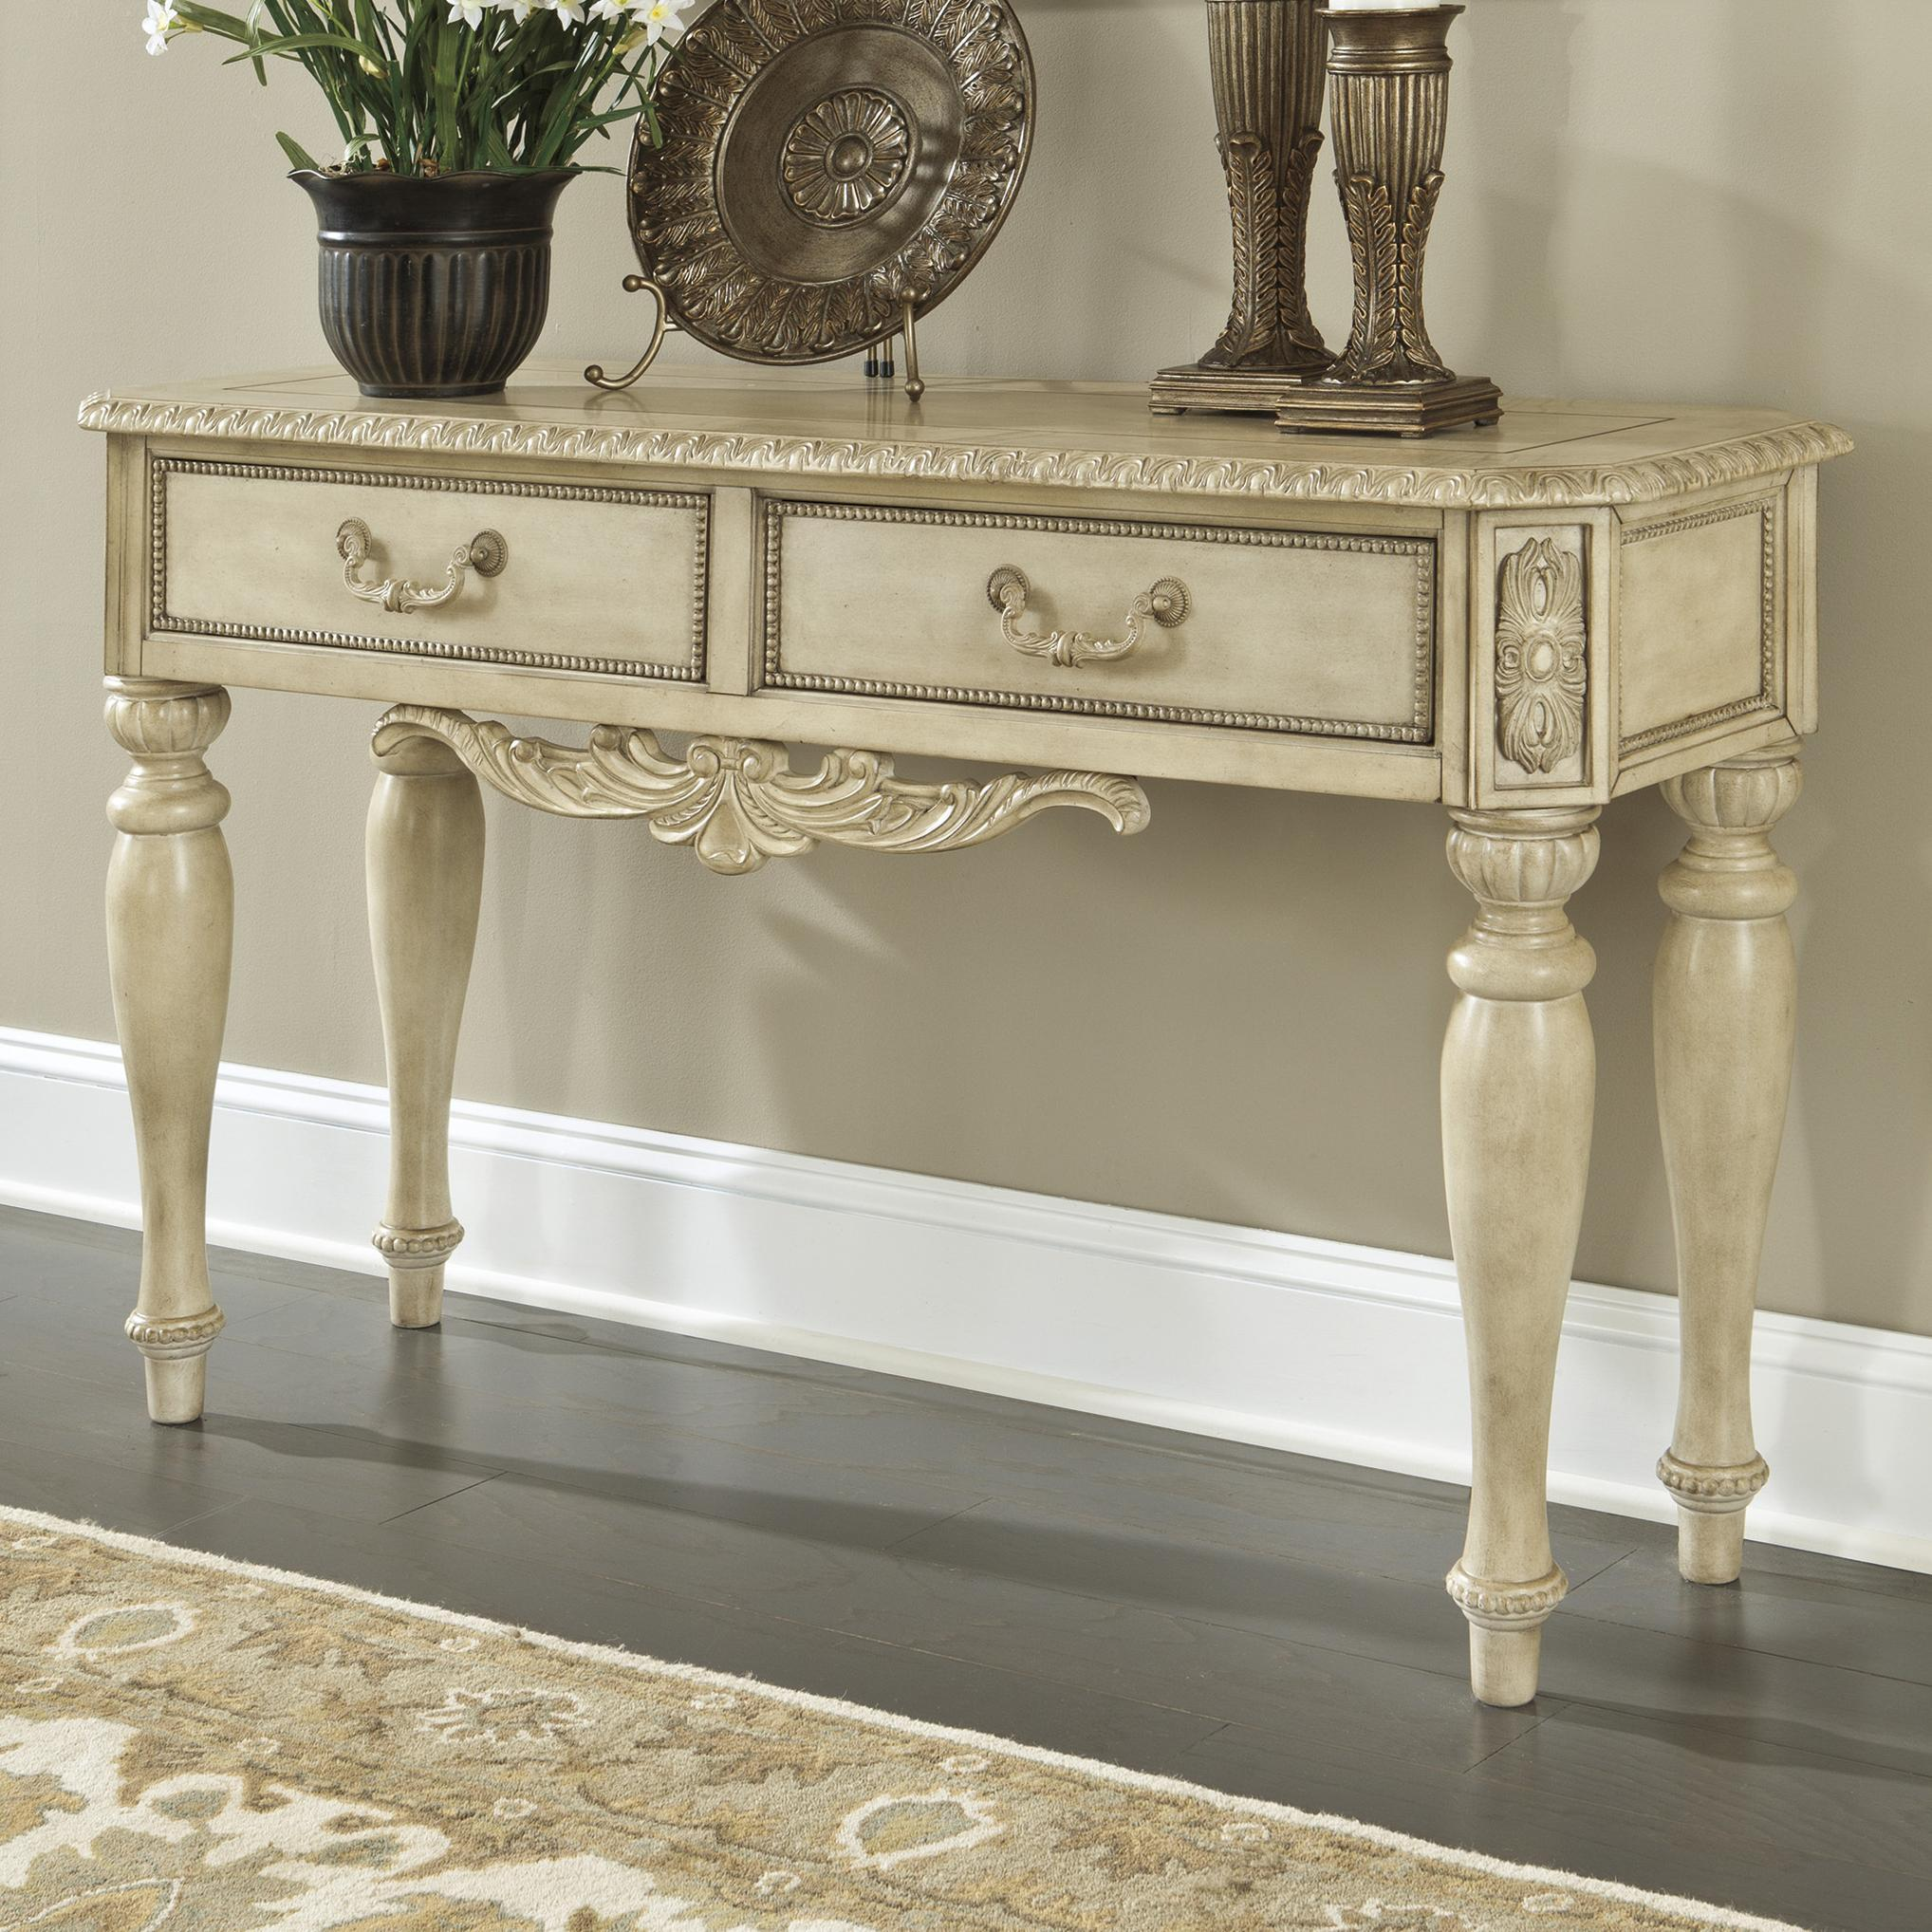 ortanique old world sofa console table with 2 drawers from